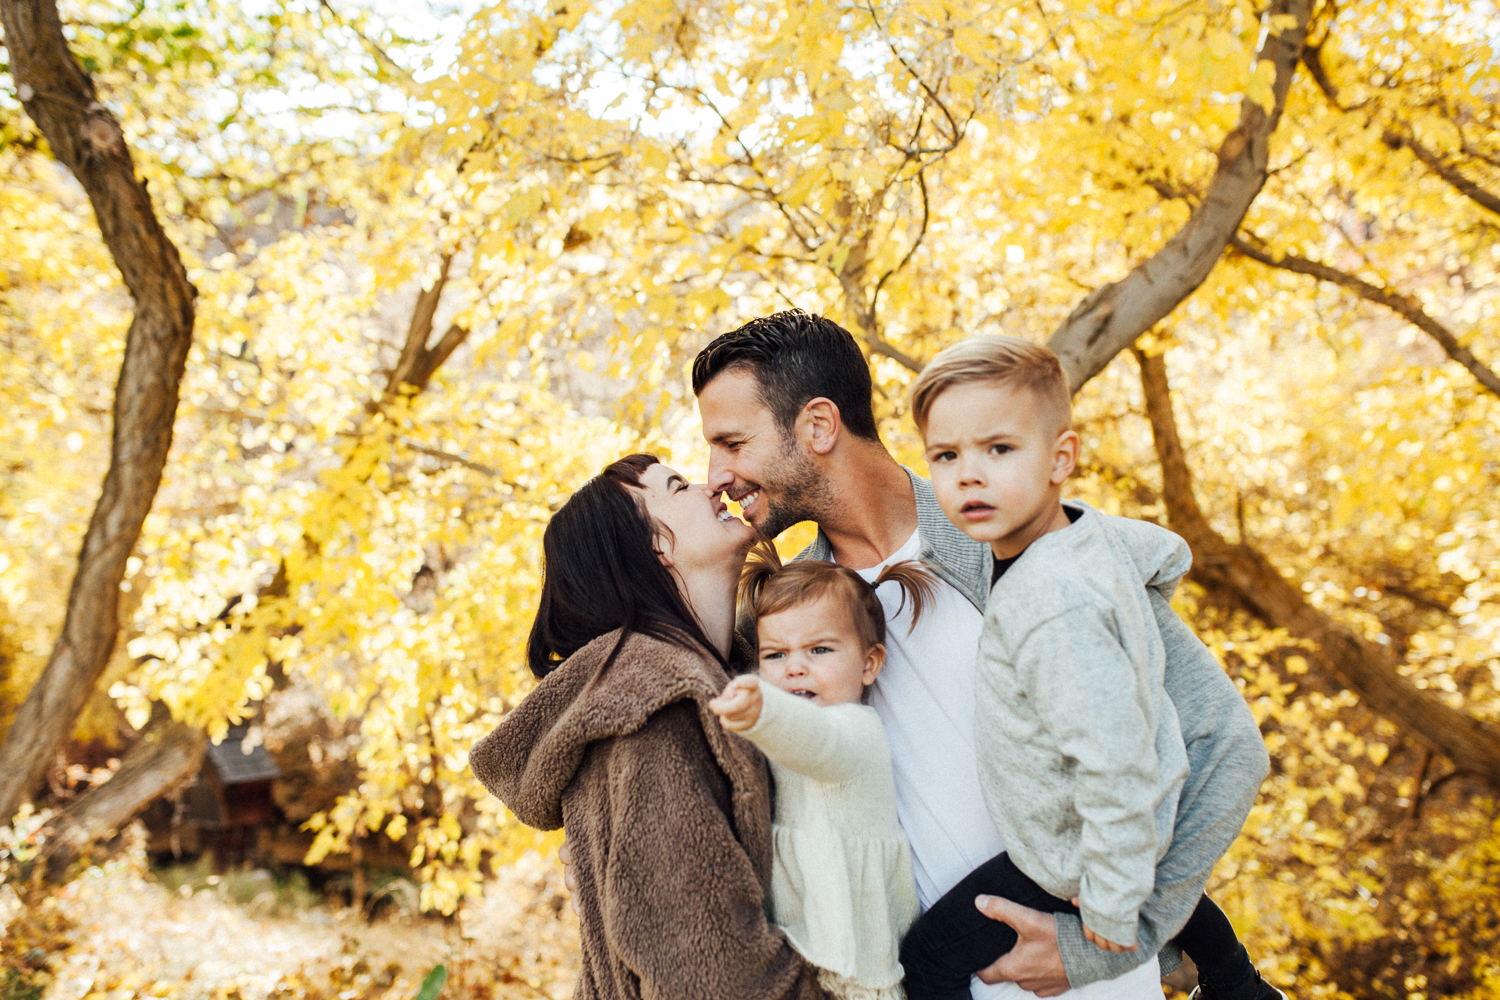 candid-family-photo-in-fall-leaves-during-free-family-mini-session-with-jen-fairchild-photography-salt-lake-ut